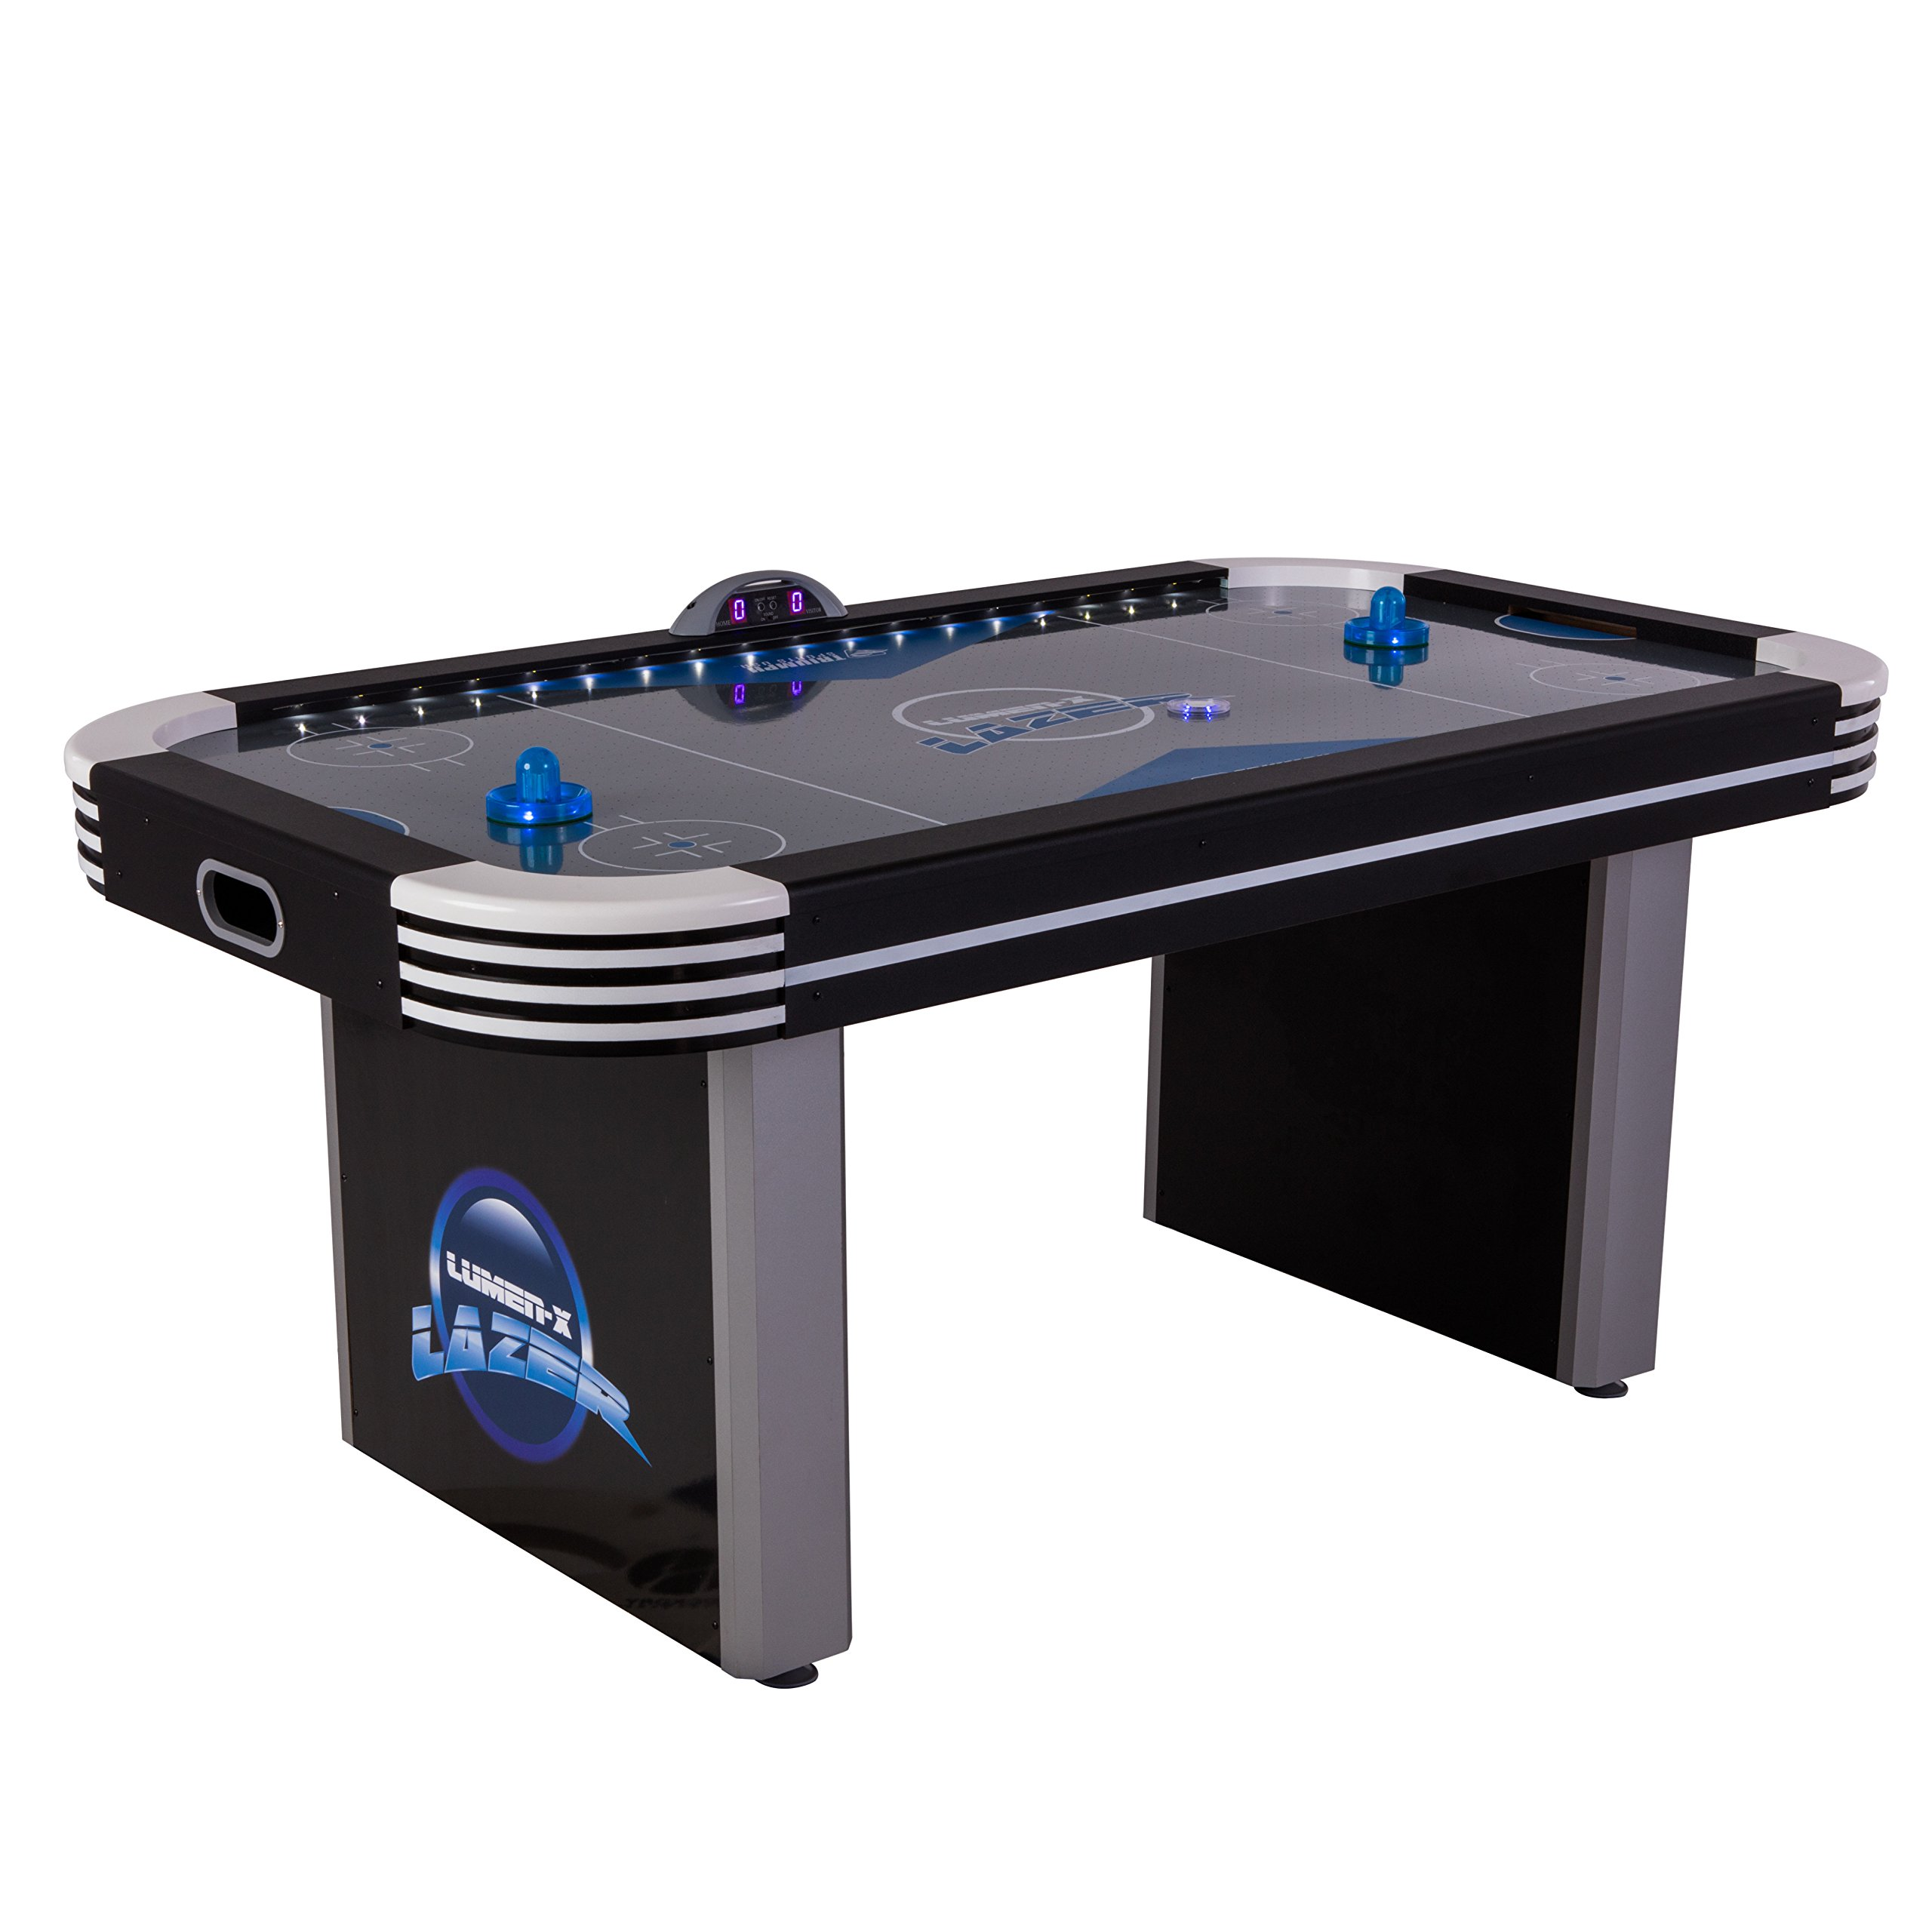 Triumph Lumen-X Lazer 6' Interactive Air Hockey Table Featuring All-Rail LED Lighting and In-Game Music by Triumph Sports